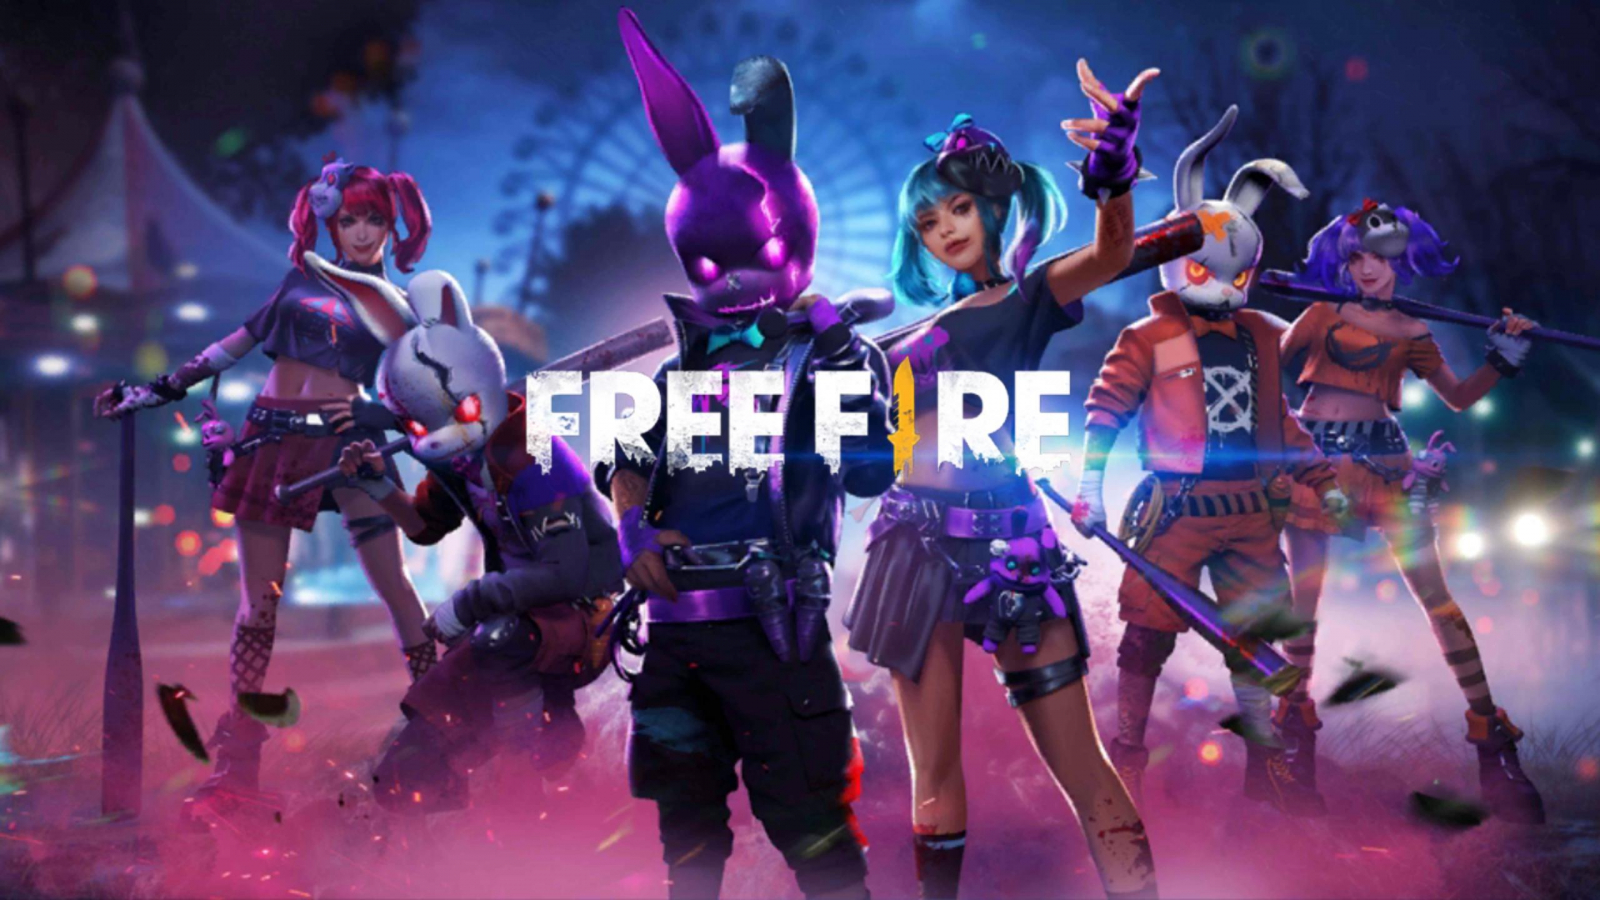 Free Download Guide For Fire 2020 For Android Apk Download 2560x1440 For Your Desktop Mobile Tablet Explore 49 Free Fire 2020 Wallpapers Free Fire 2020 Wallpapers 2020 Free Fire Mobile Wallpapers Free Fire Wallpaper